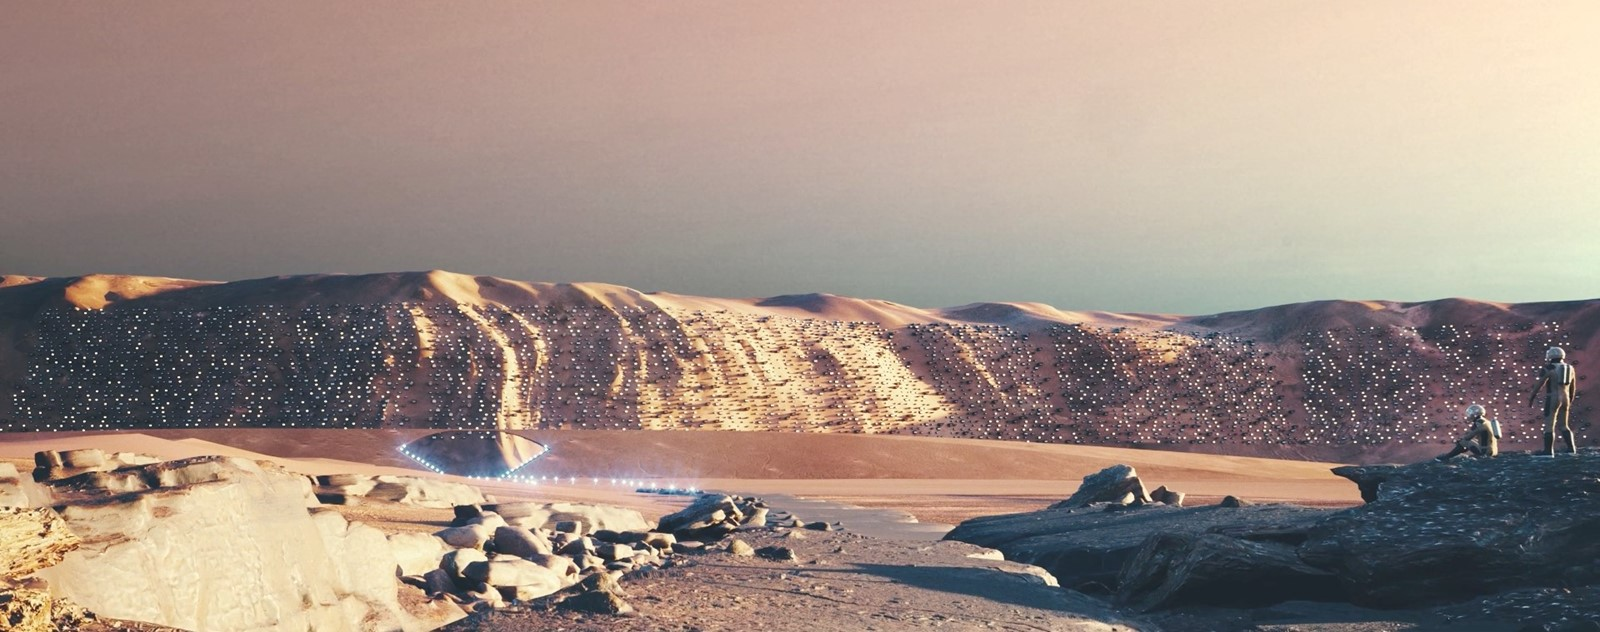 Nüwa, the first self-sustainable city on Mars 2